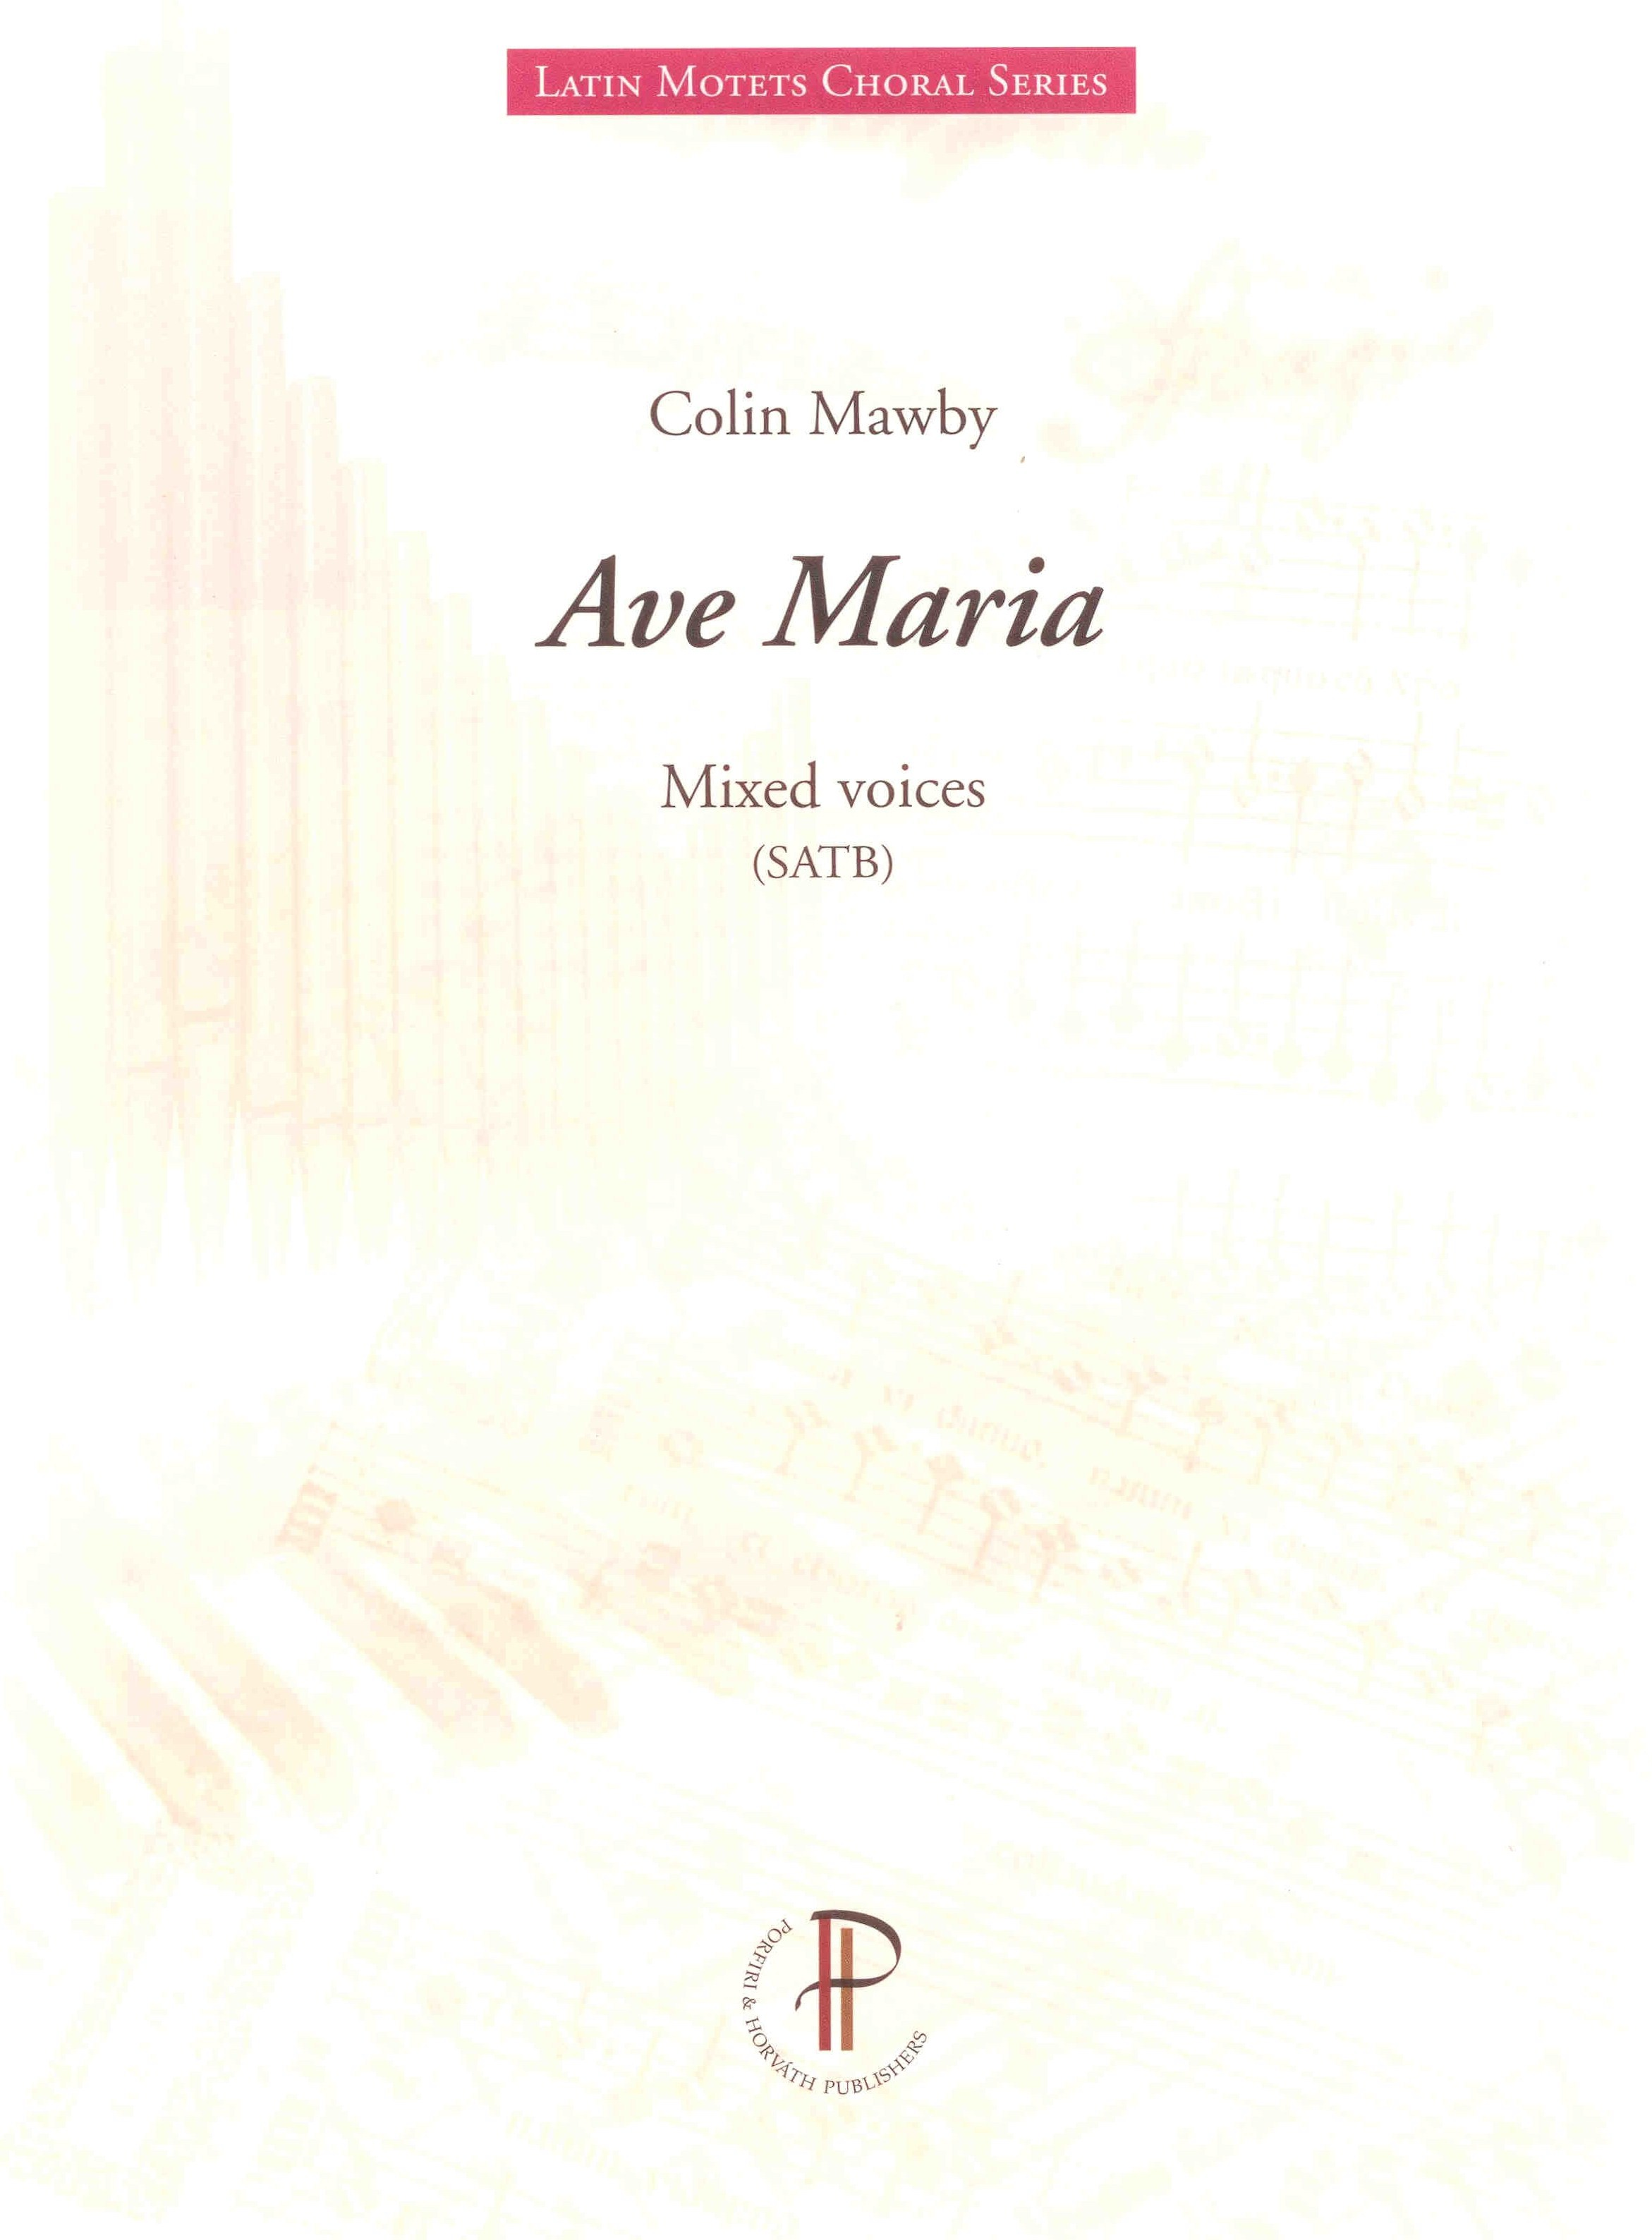 Ave Maria - Show sample score